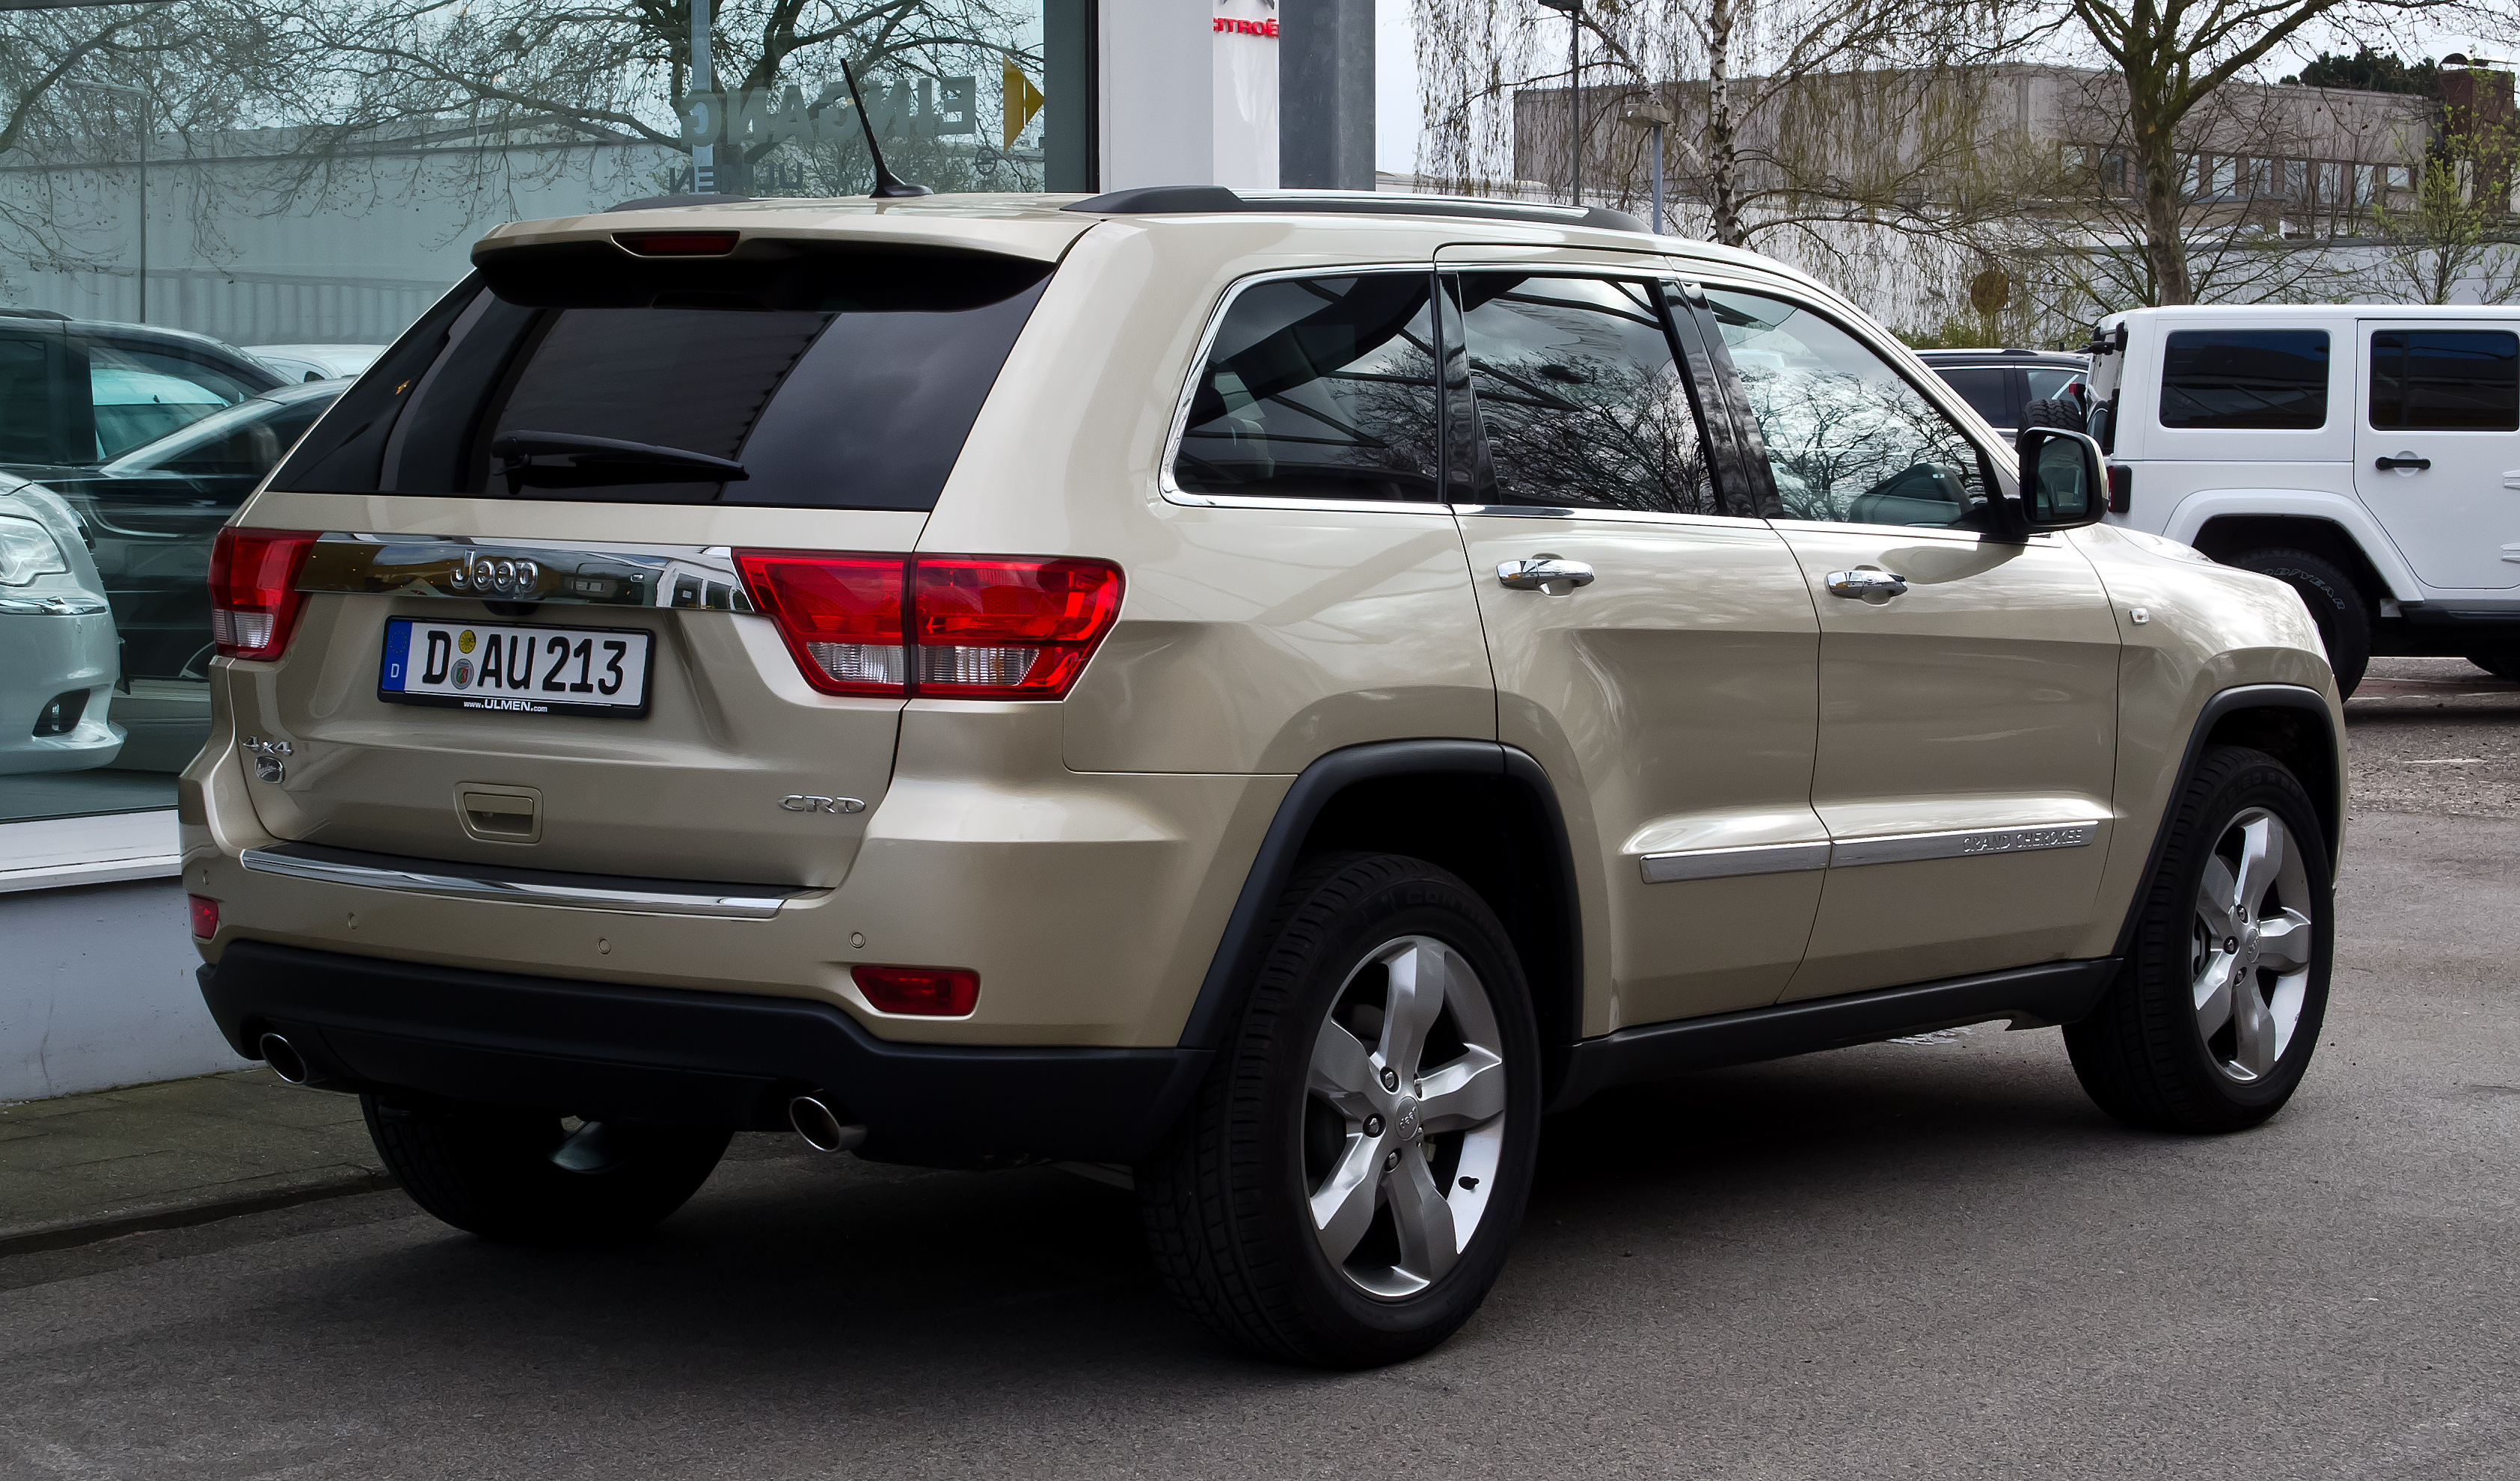 jeep grand cherokee 3 0 crd technical details history photos on better parts ltd. Black Bedroom Furniture Sets. Home Design Ideas